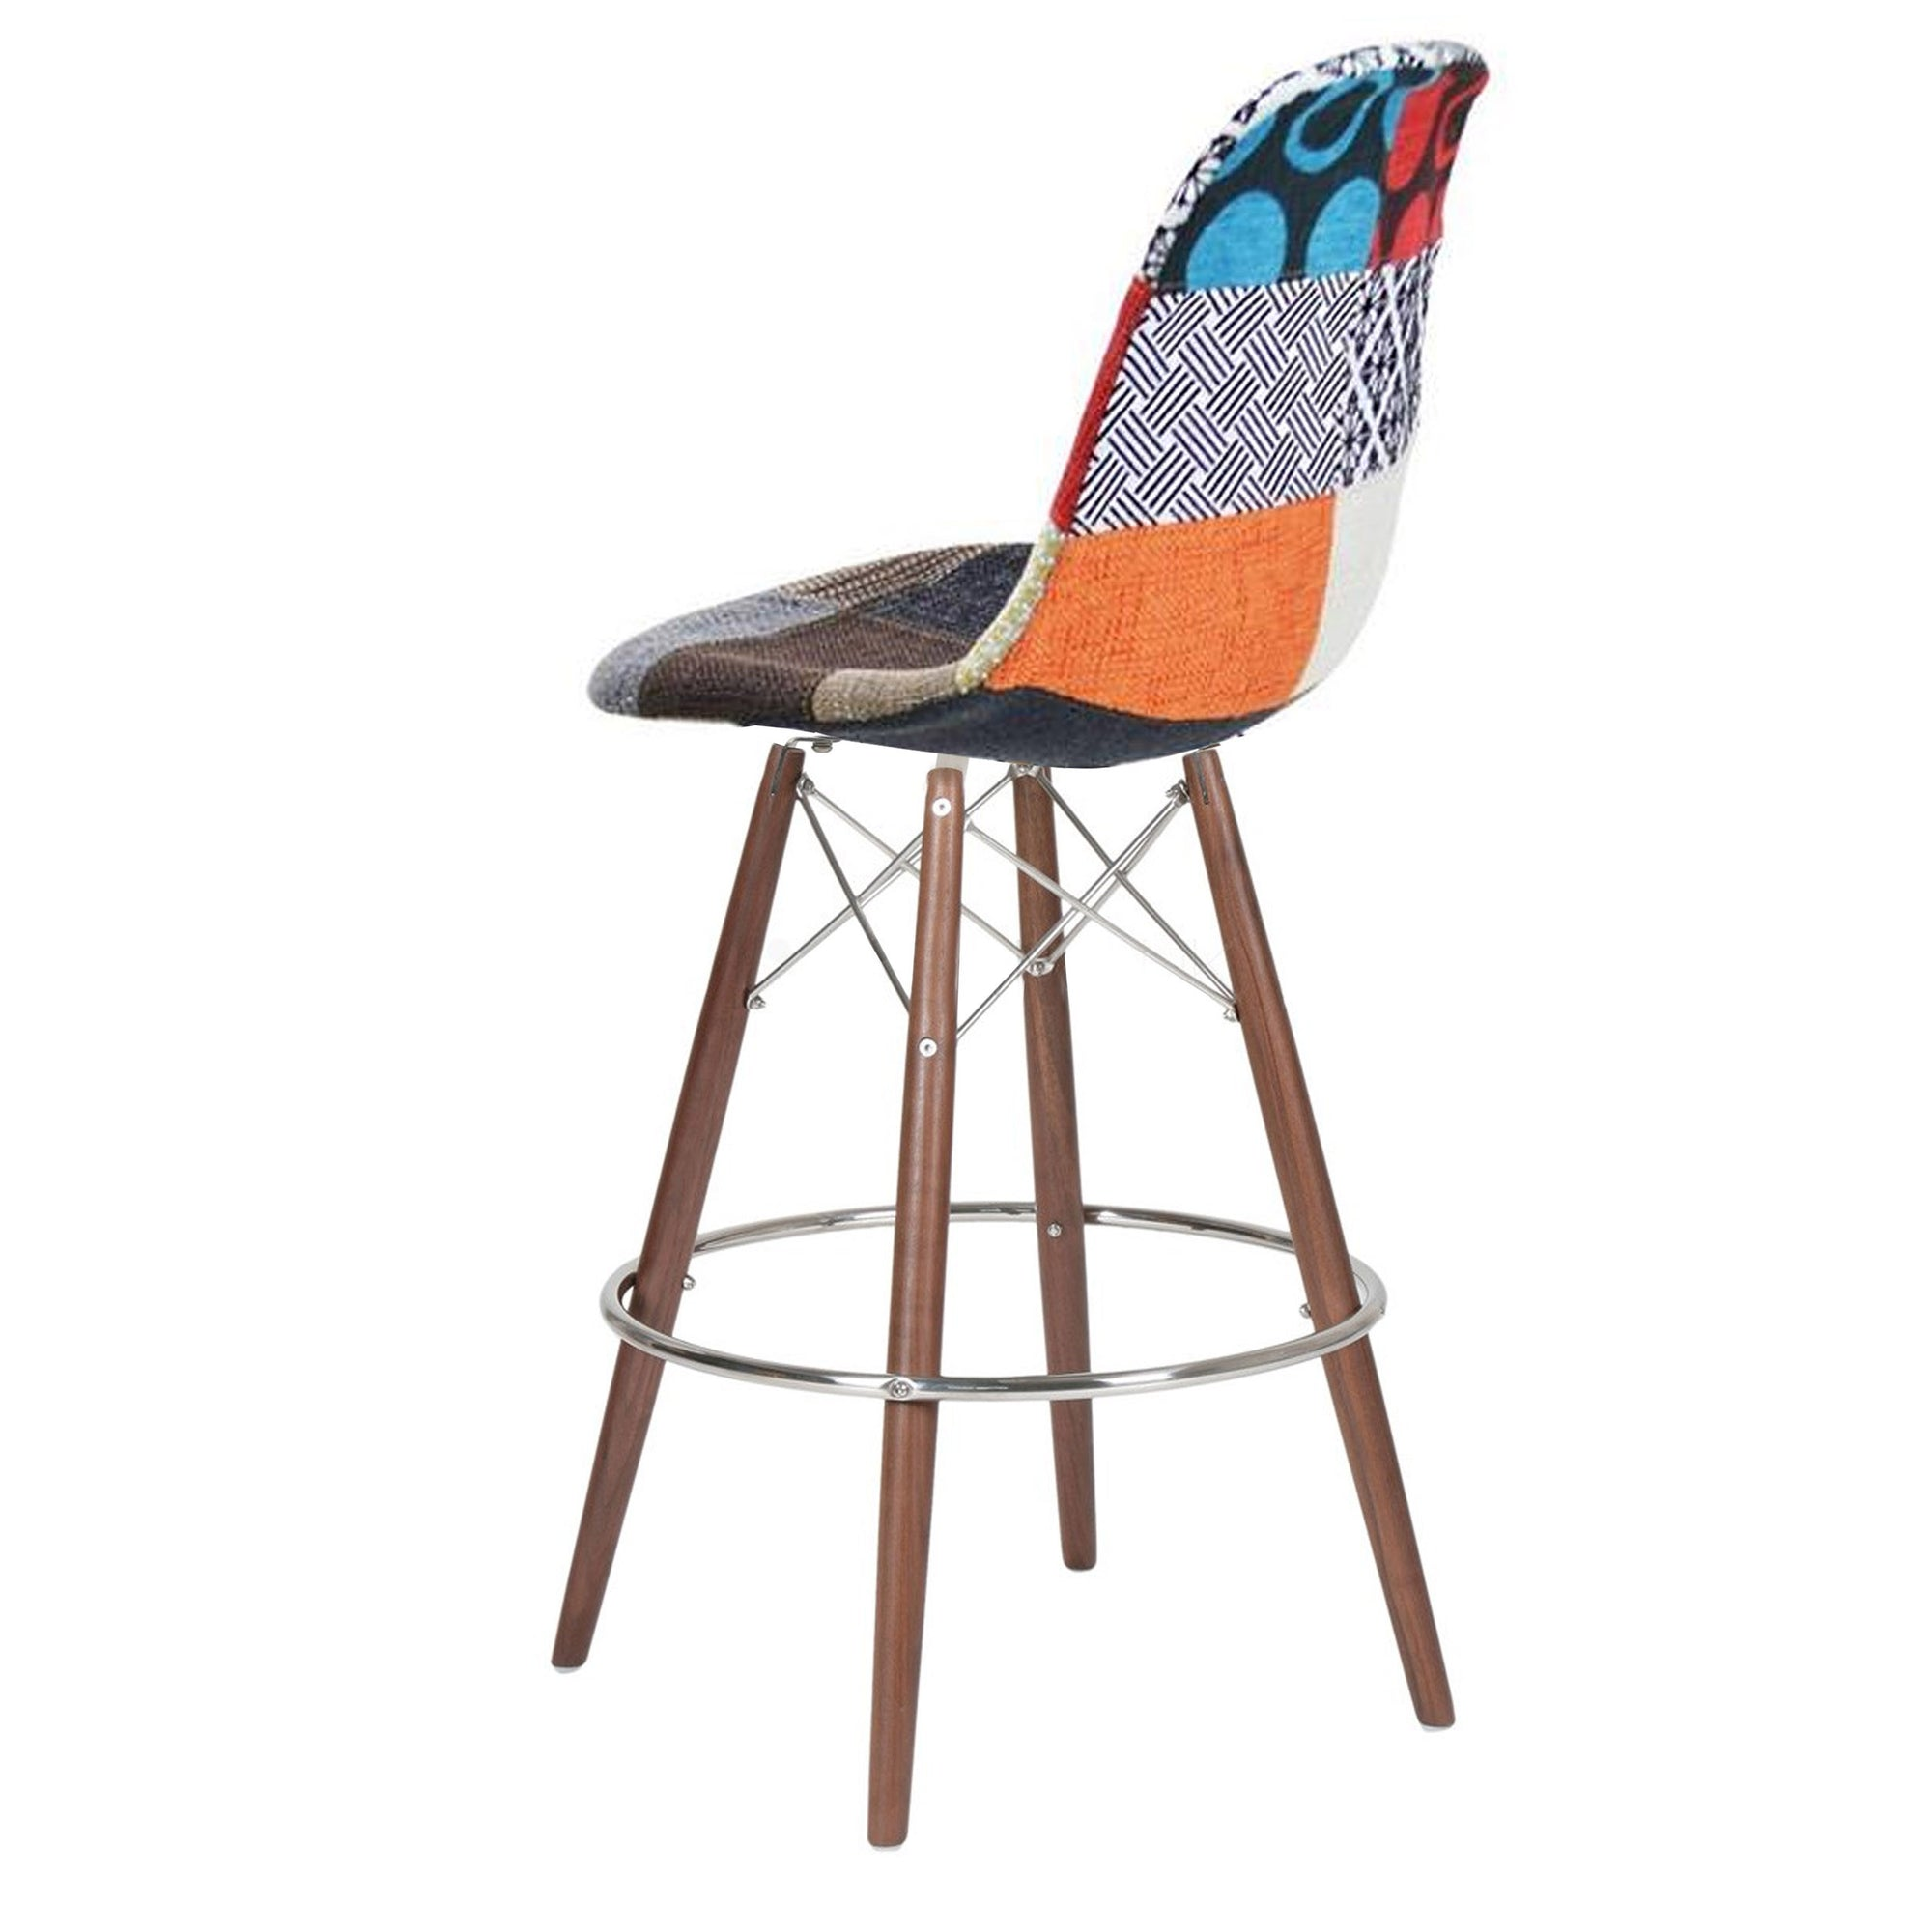 Bar Chair-Fabric- MSB0018F-W -  كرسي مرتفع - قماش - Shop Online Furniture and Home Decor Store in Dubai, UAE at ebarza